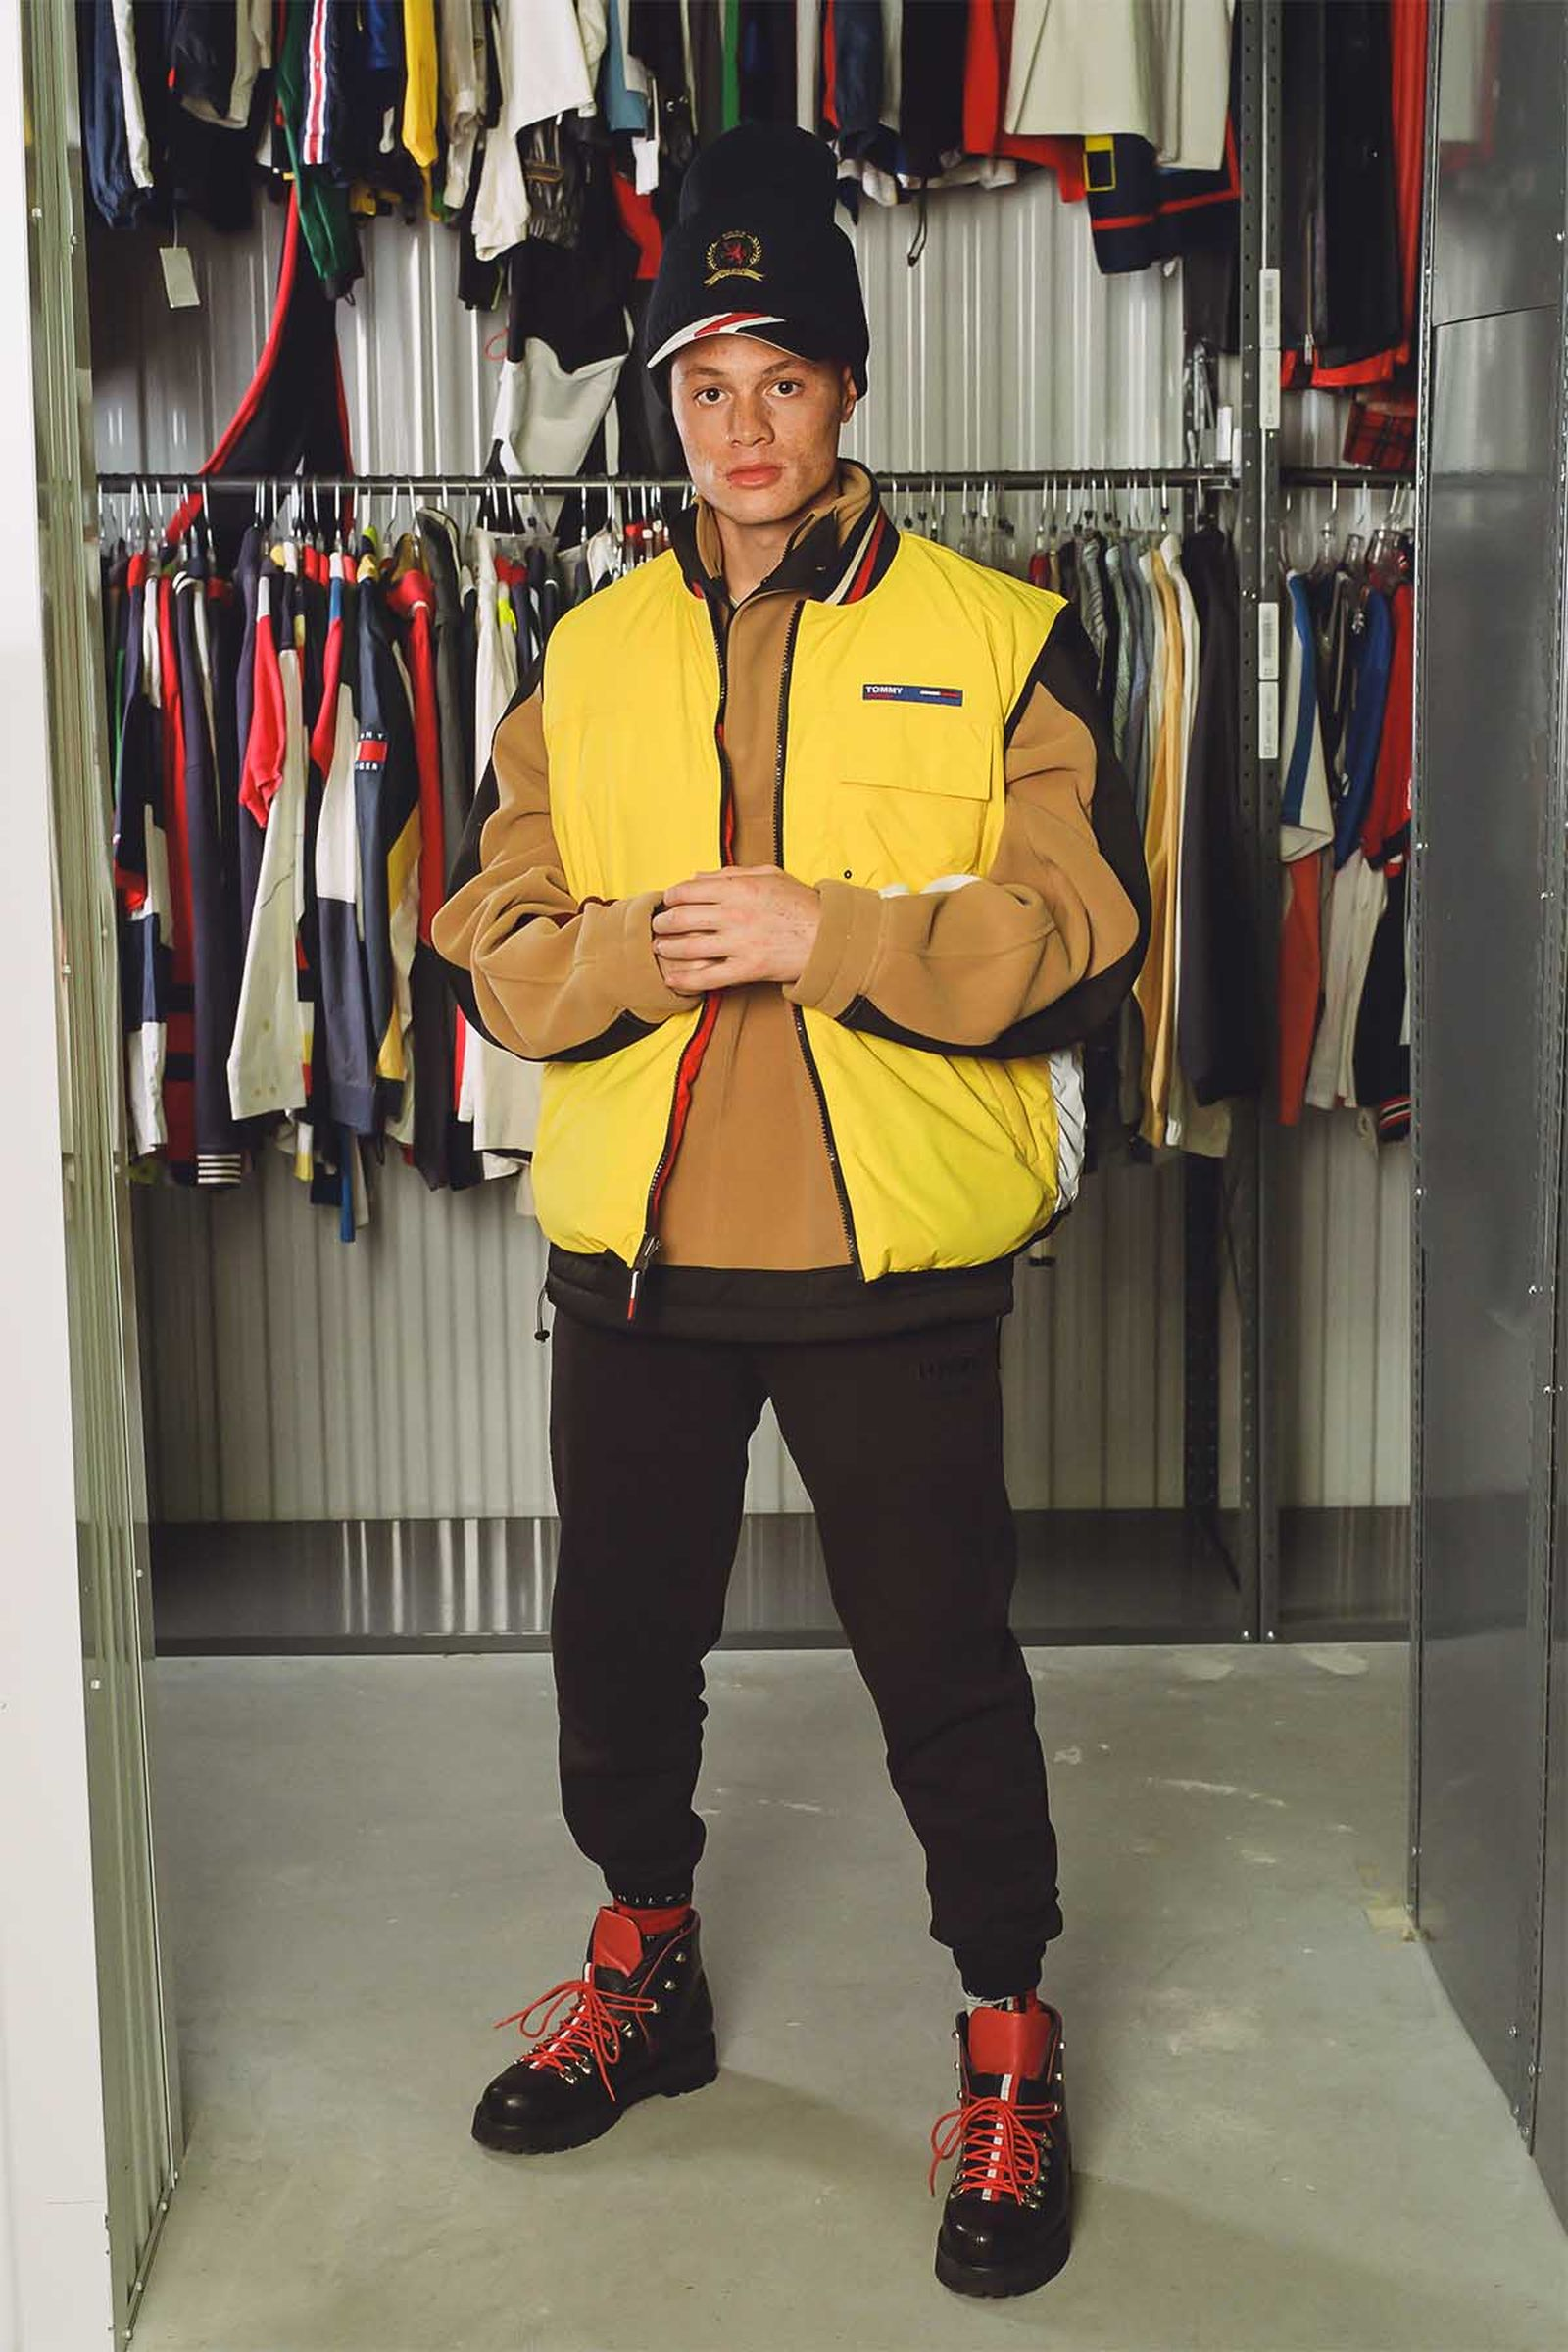 Tommy Jeans Reversible Quilted Vest (Late 2000s), Hilfiger Collection Men's Crest Polar Fleece Sweatshirt  and Crest Classic Knitted Hat (Fall 2020), Tommy Jeans Men's Organic Cotton Sweatpant (Fall 2020), Tommy Hilfiger Collection Leather Boots (Fall 2018), Tommy Hilfiger X KITH Cotton Baseball Hat (SS19)